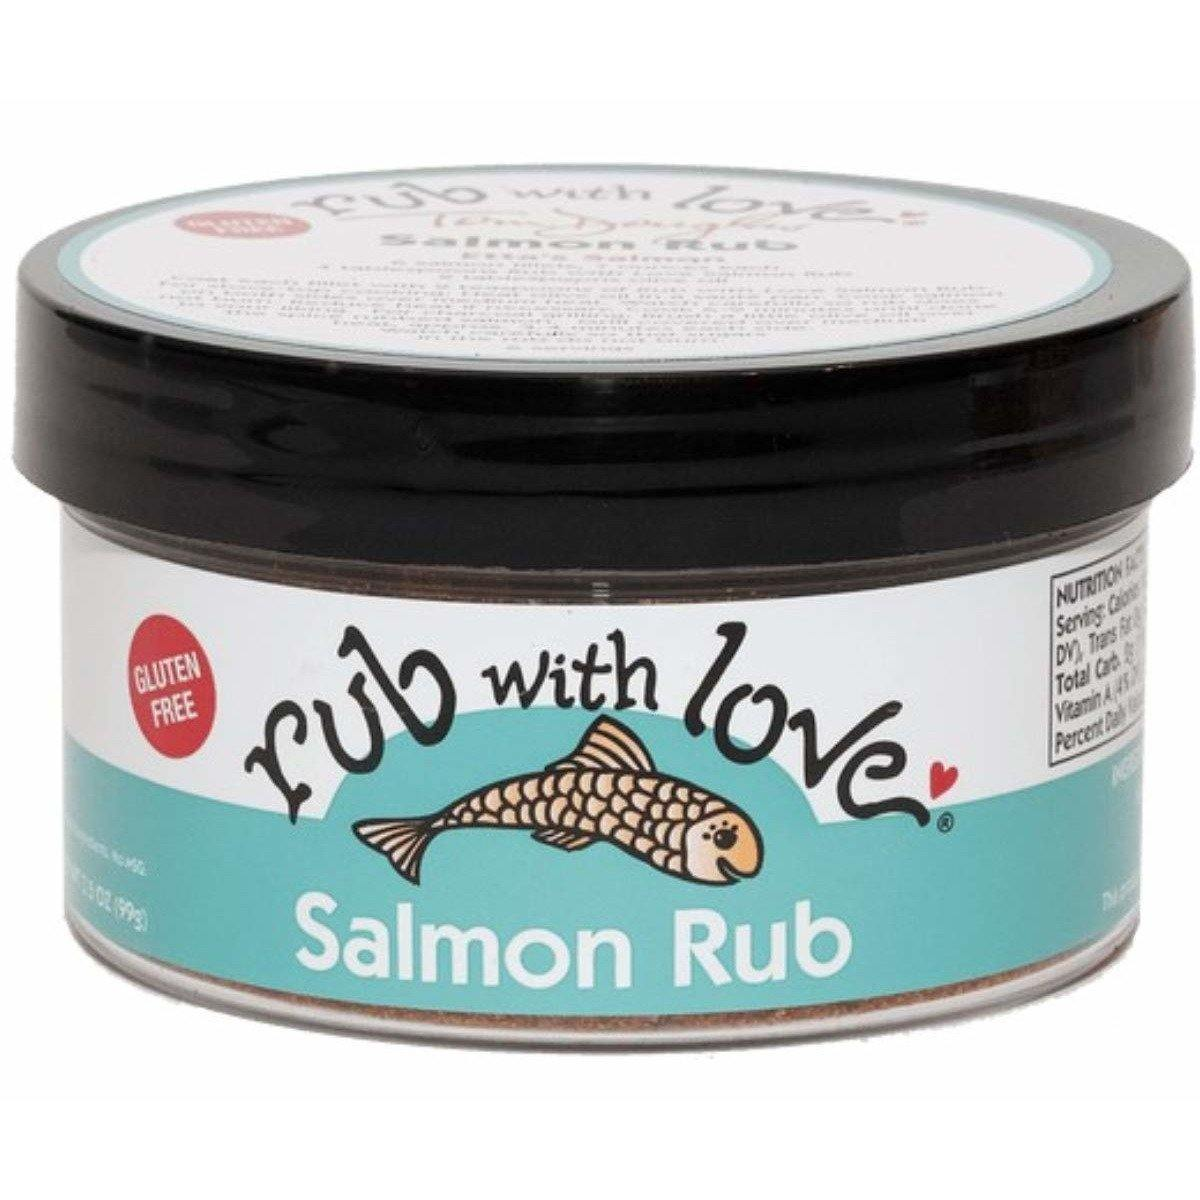 Tom Douglas - Rub With Love - Salmon  Rub